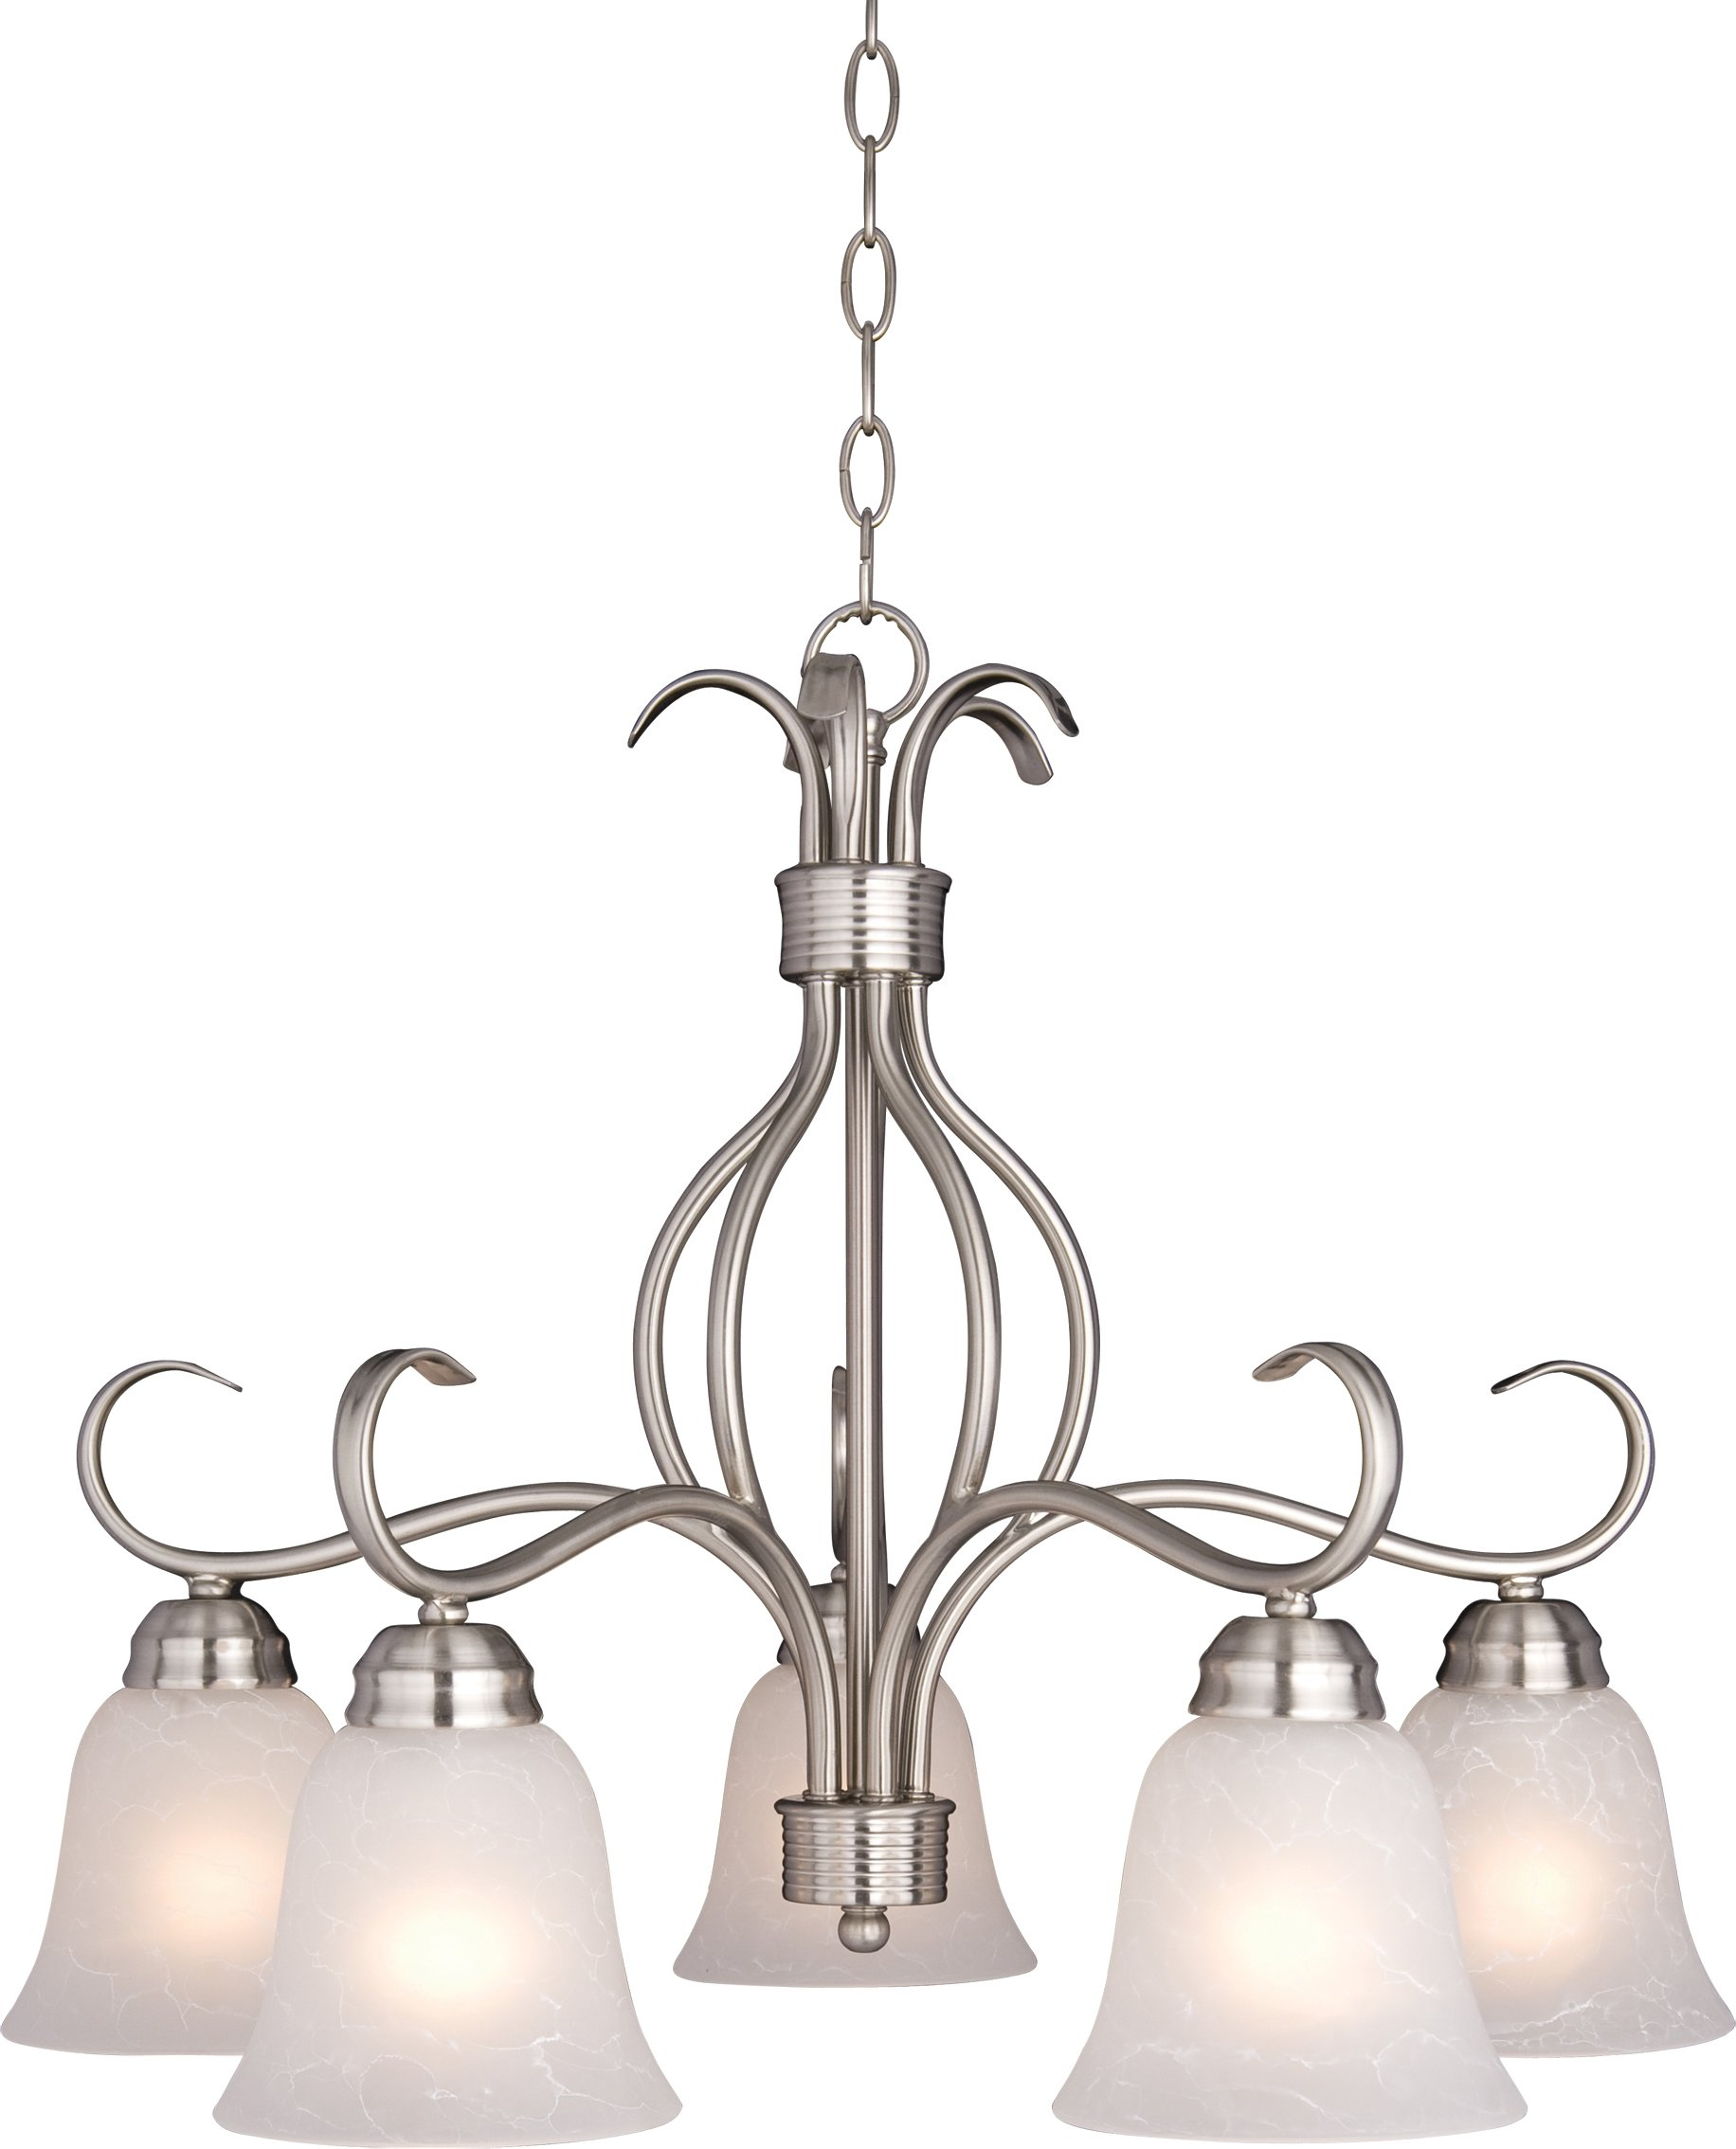 Wehr 5 Light Shaded Chandelier Intended For Gaines 5 Light Shaded Chandeliers (View 6 of 30)